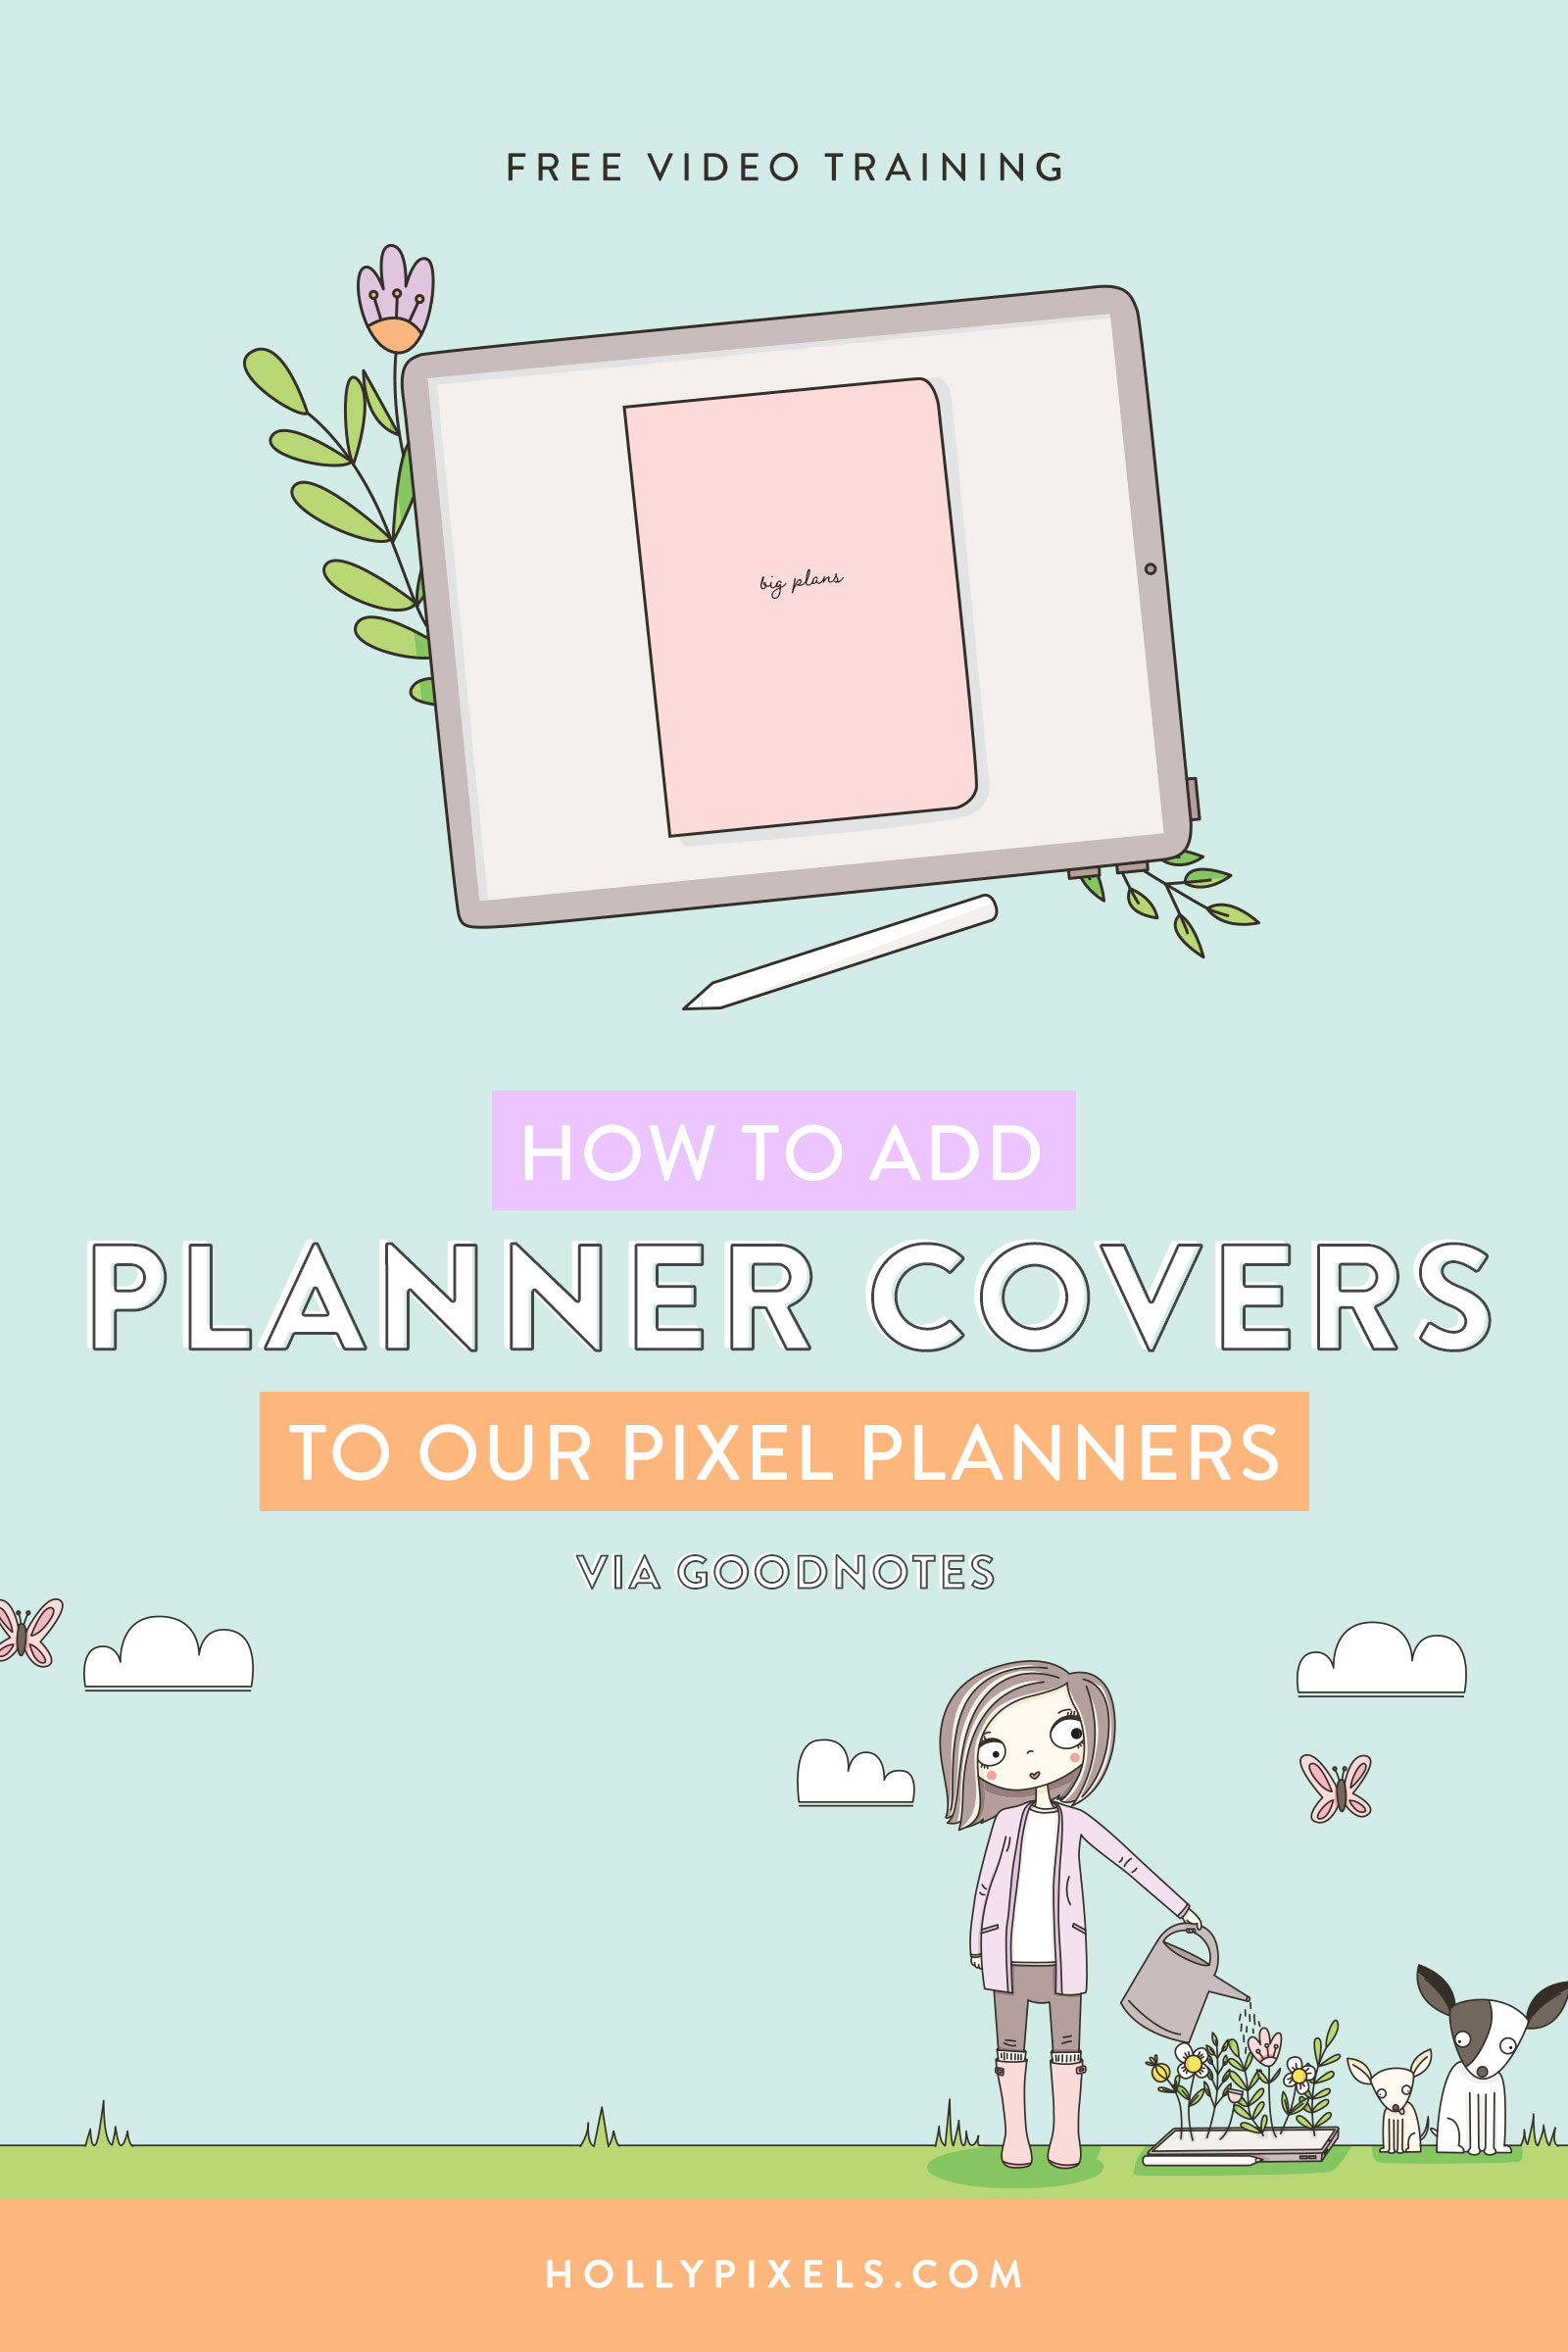 We sell a lot of really cute covers for your Digital Planners in the shoppe. This is a great way to duplicate your current Pixel Planner and use it for other things. So you could potentially have five planners but only buy one. But the covers make it hard to figure out which one you're opening.